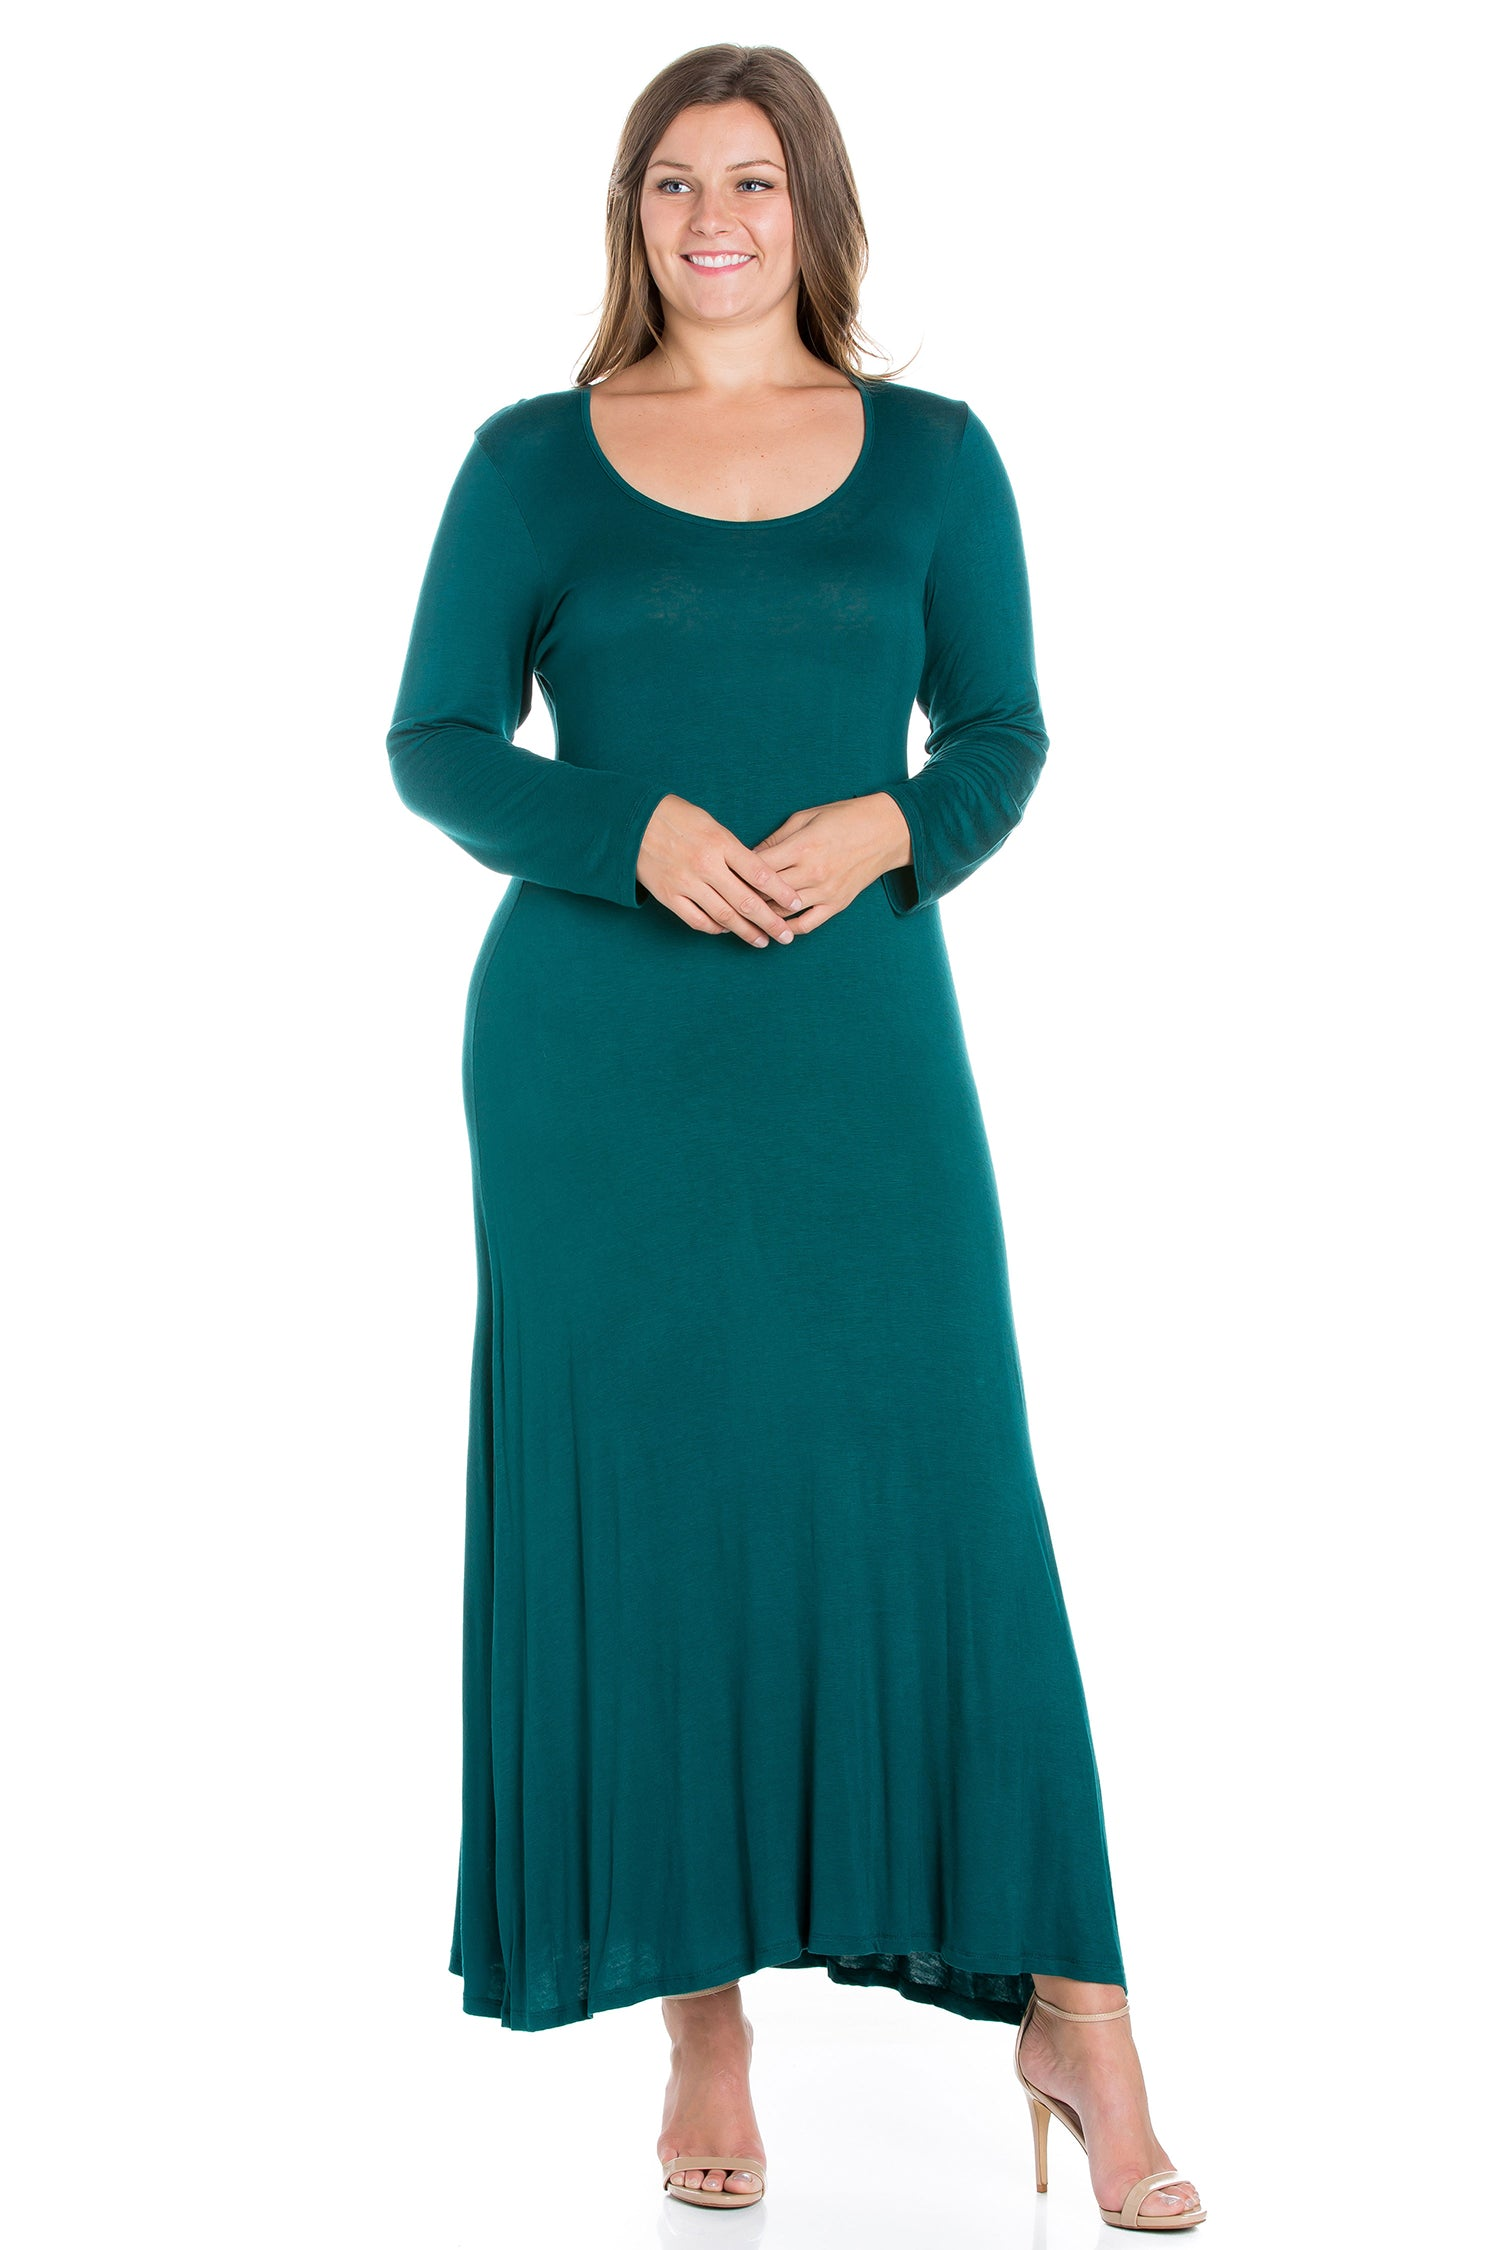 24seven Comfort Apparel Womens Long Sleeve Plus Size Maxi Dress